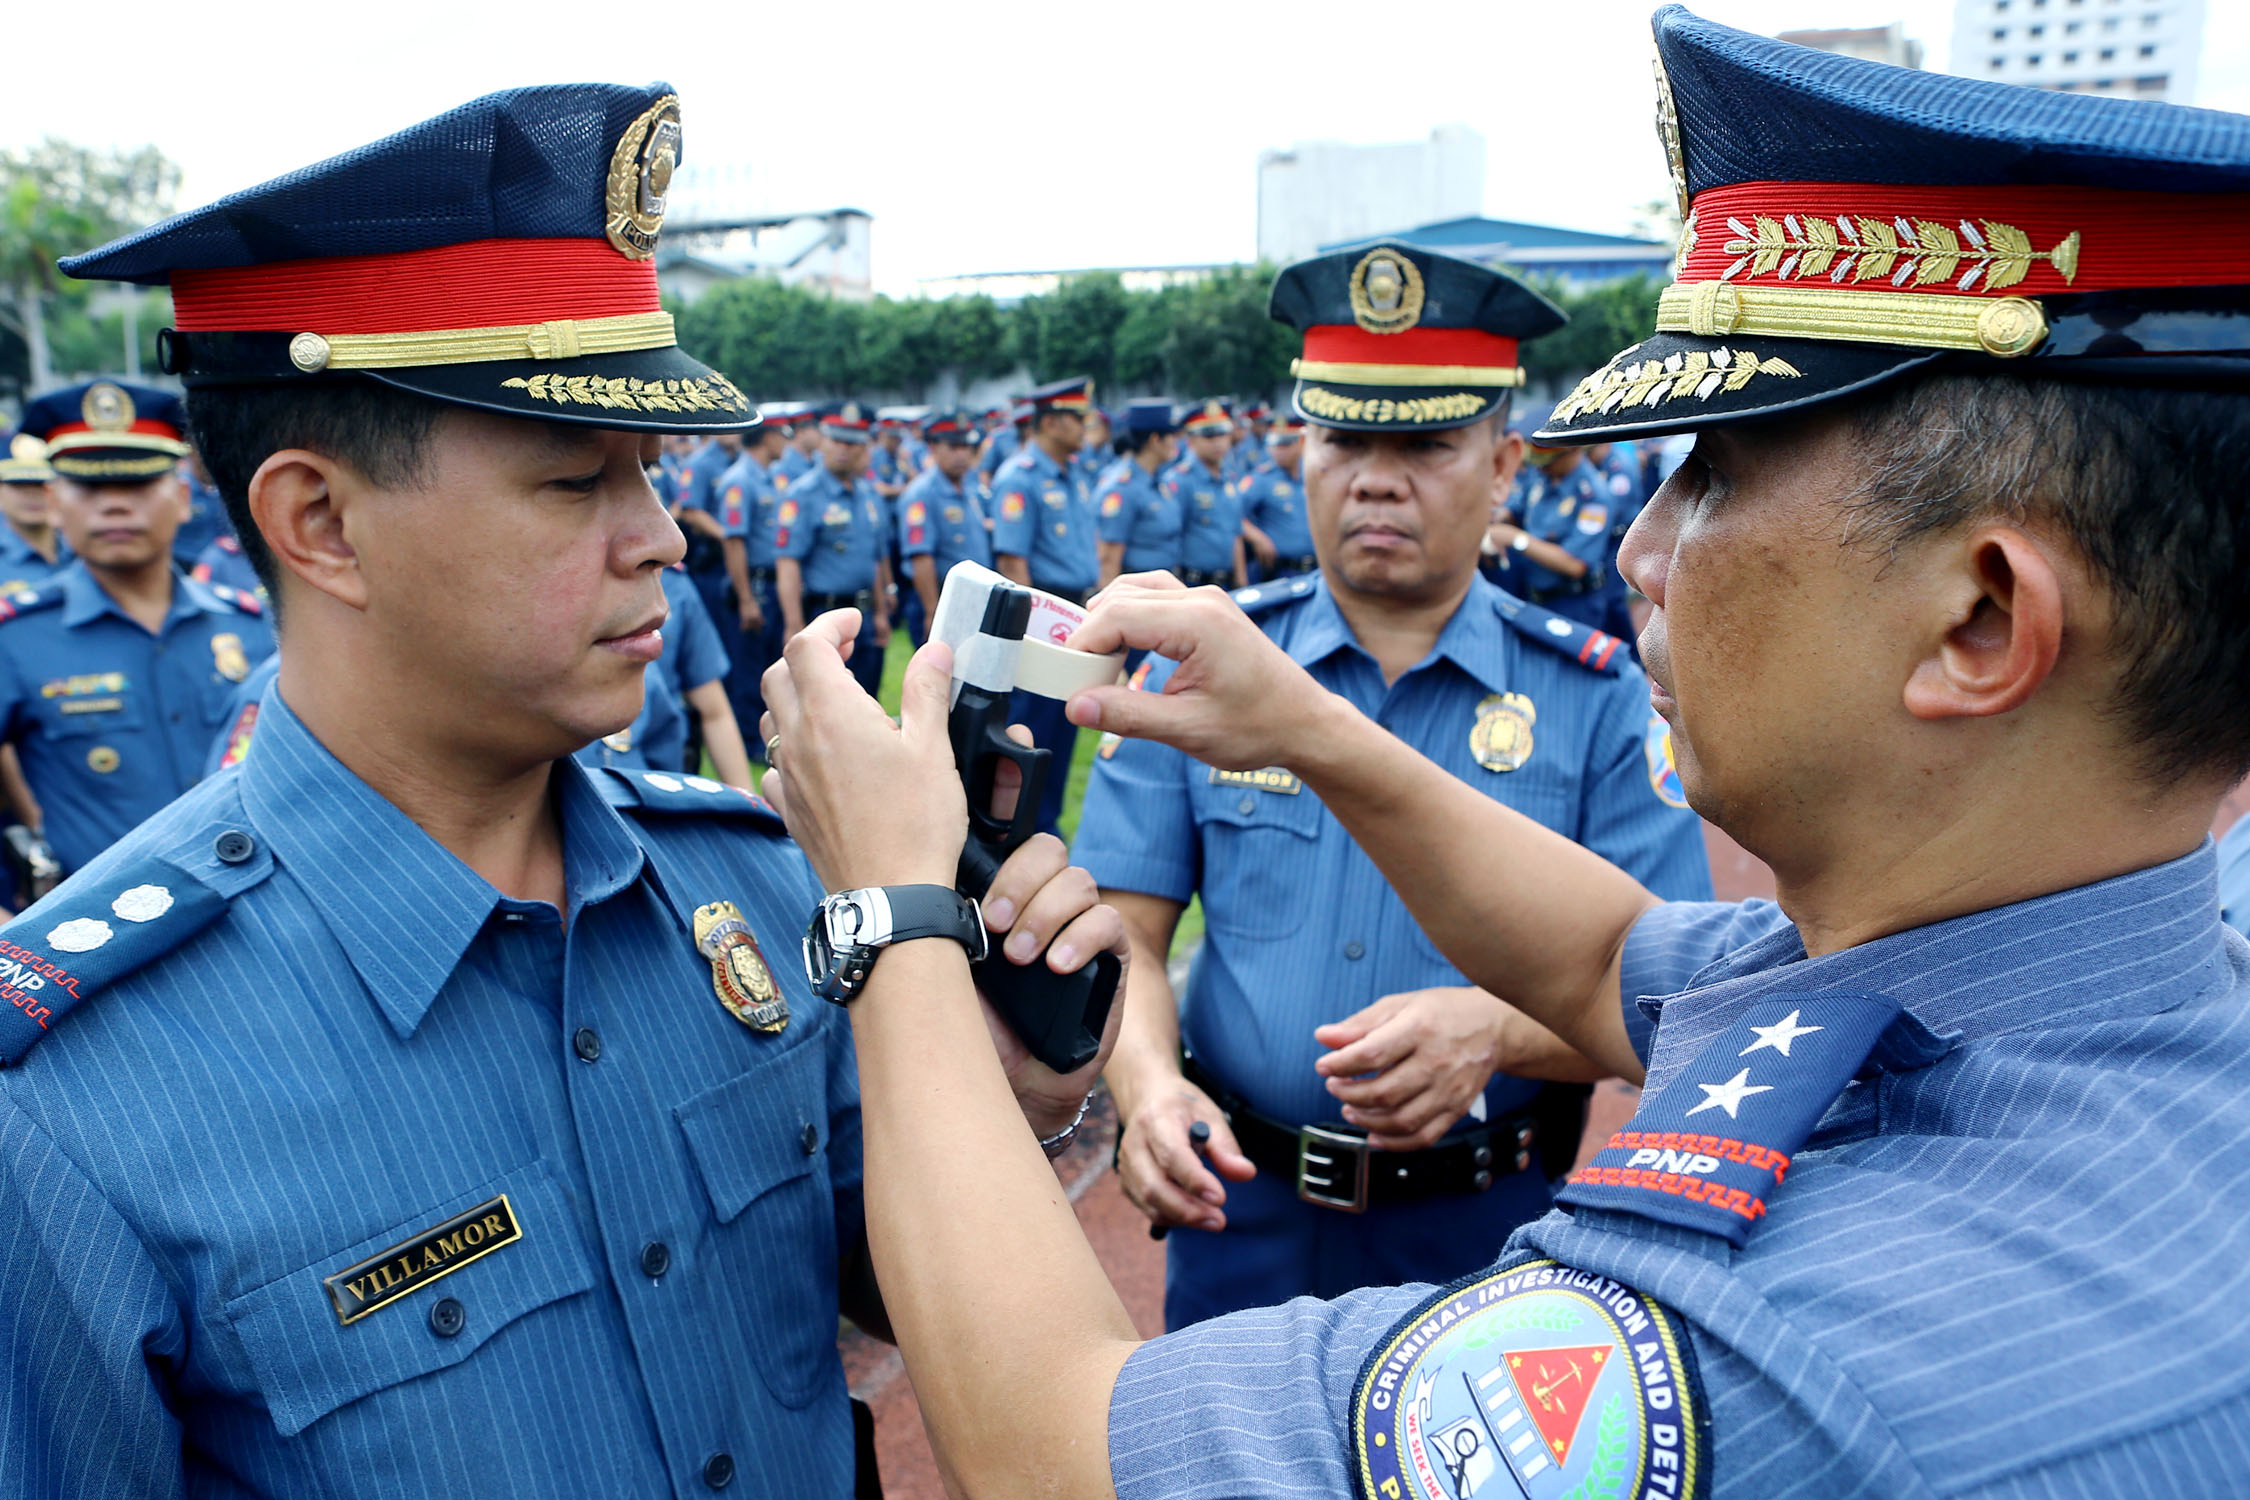 Criminal Investigation and Detection Group (CIDG) Director Benjamin Magalong leads the simultaneous gun muzzle-taping held on Monday (Dec. 22, 2014) at the Philippine National Police (PNP) headquarters in Camp Crame, Quezon City to assure the public that PNP personnel will not discharge their firearms as prevention of casualties and injuries during the Christmas and New Year celebrations. The traditional gun muzzling is conducted from the National Headquarters down to Police Regional Offices, Provincial Offices, City and Municipal Police Stations nationwide. (PNA photo courtesy of PNP-PIO)